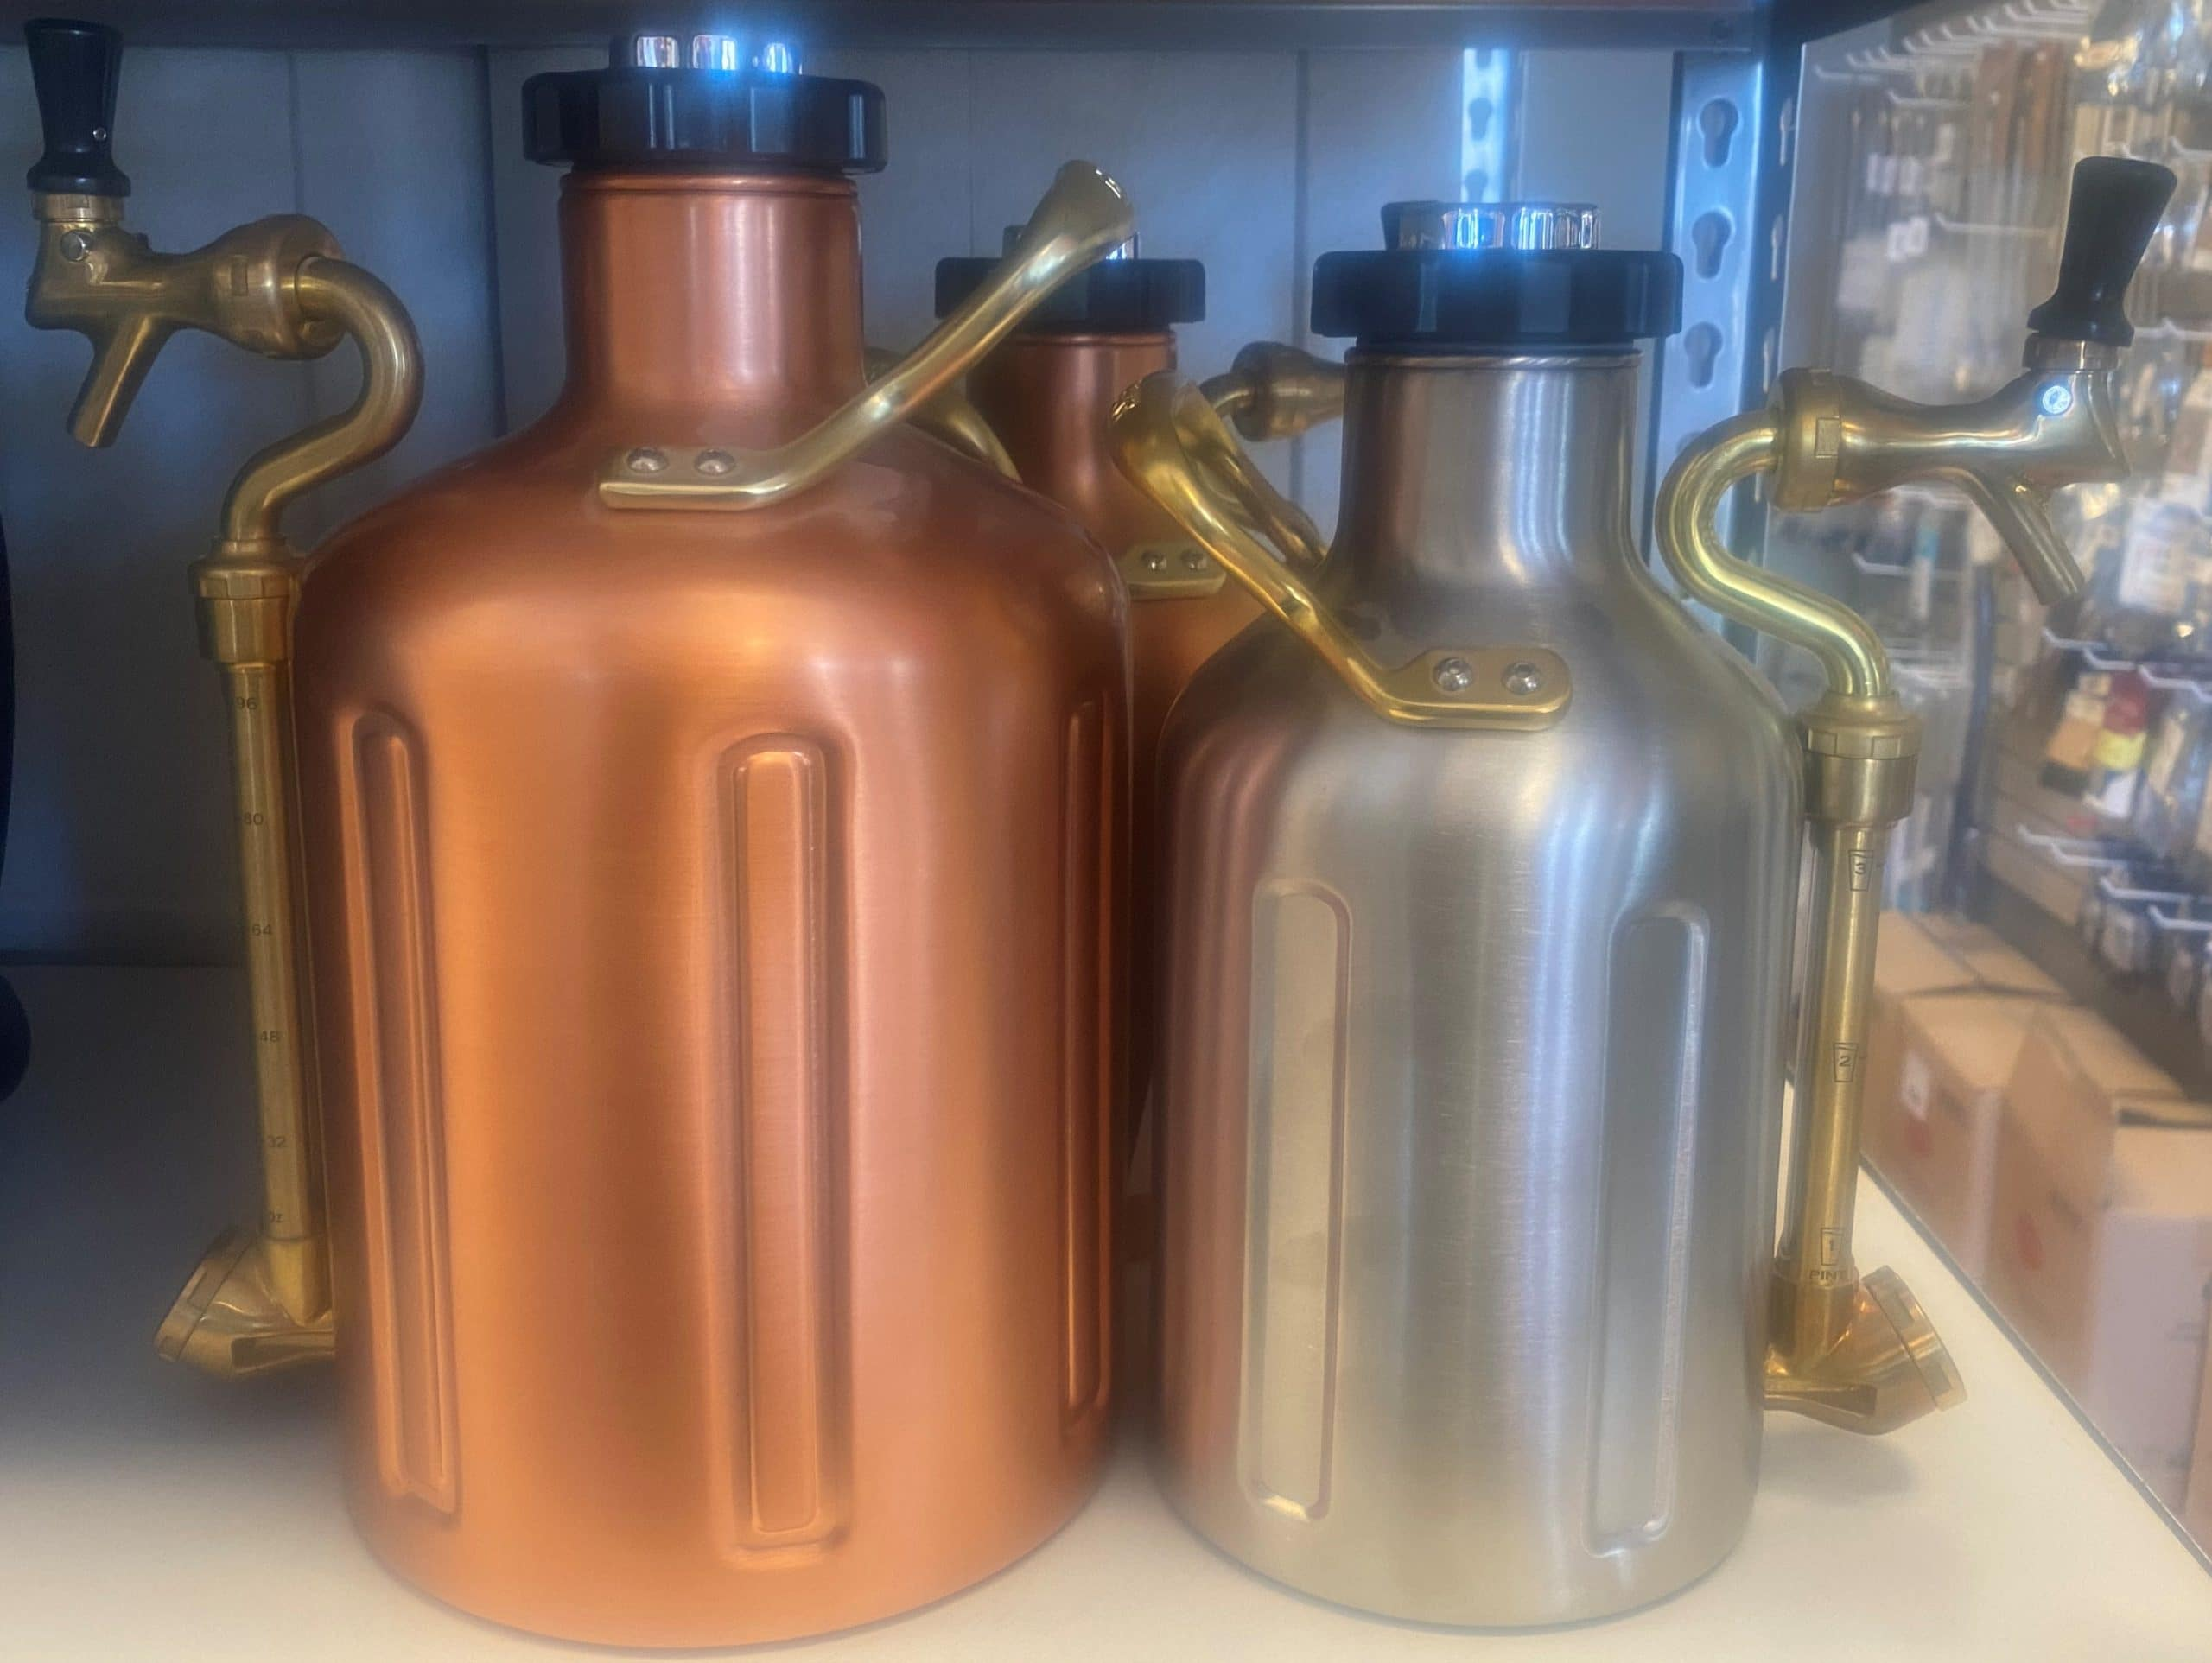 Pressurized growlers